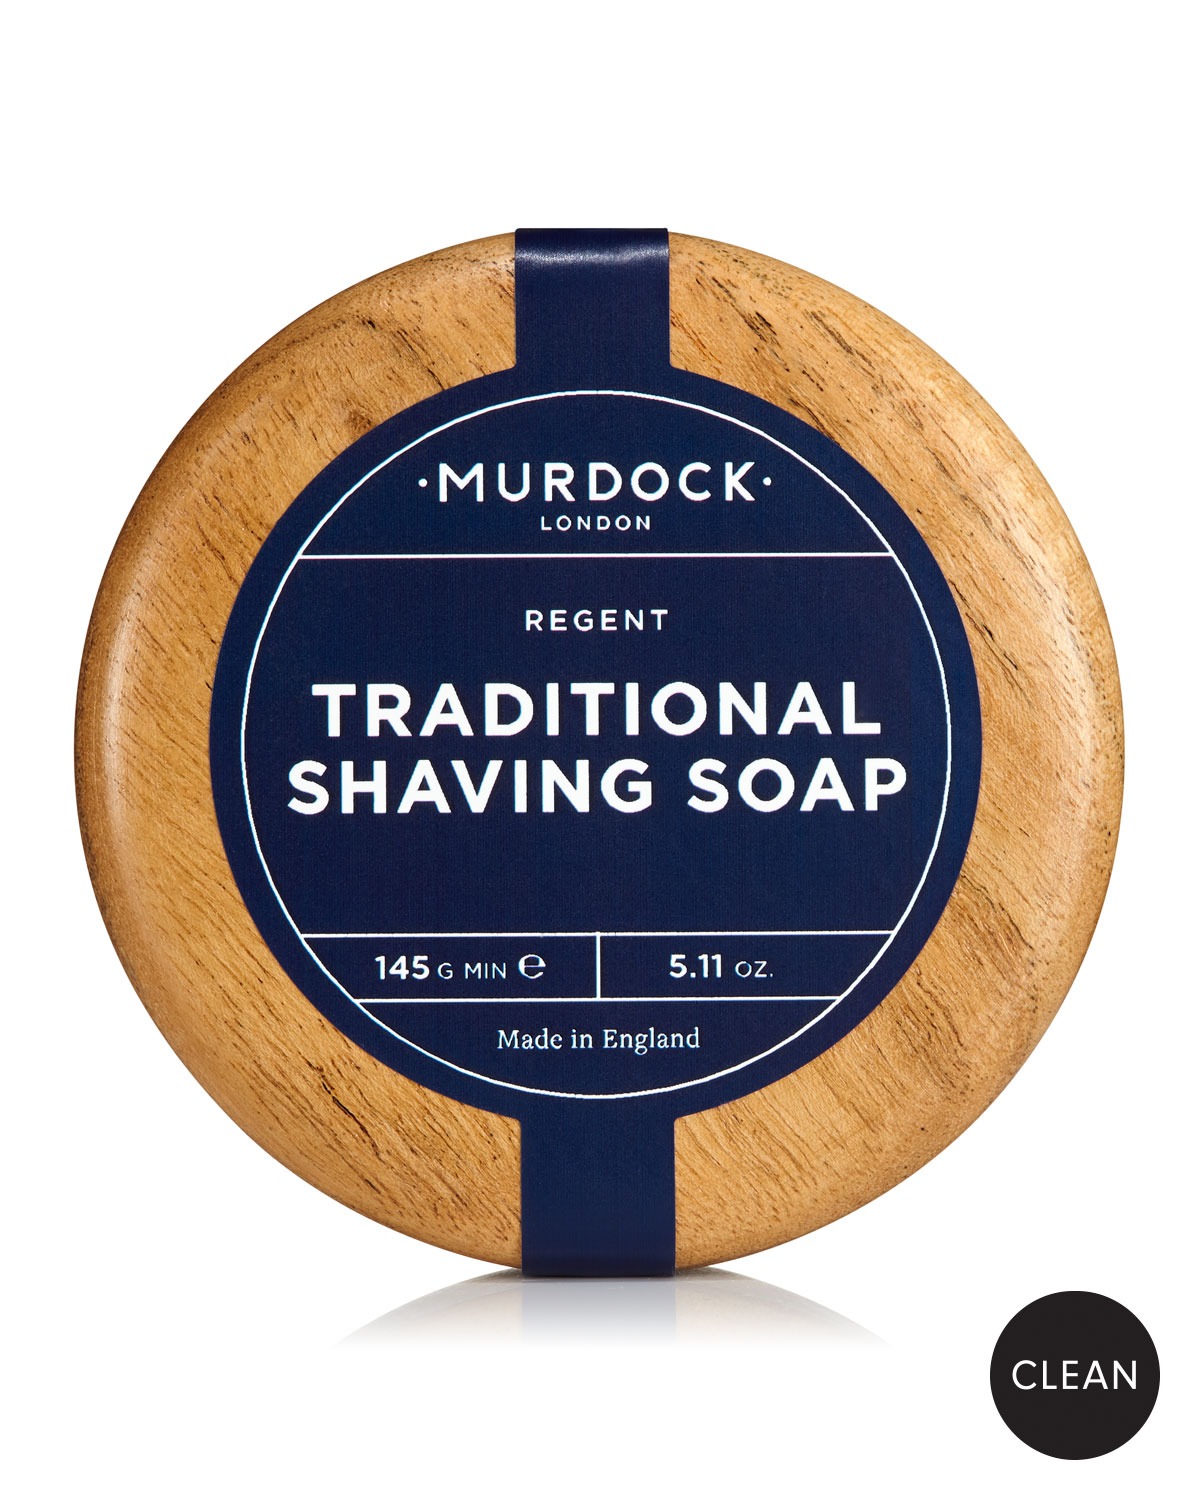 Murdock London Traditional Shaving Soap